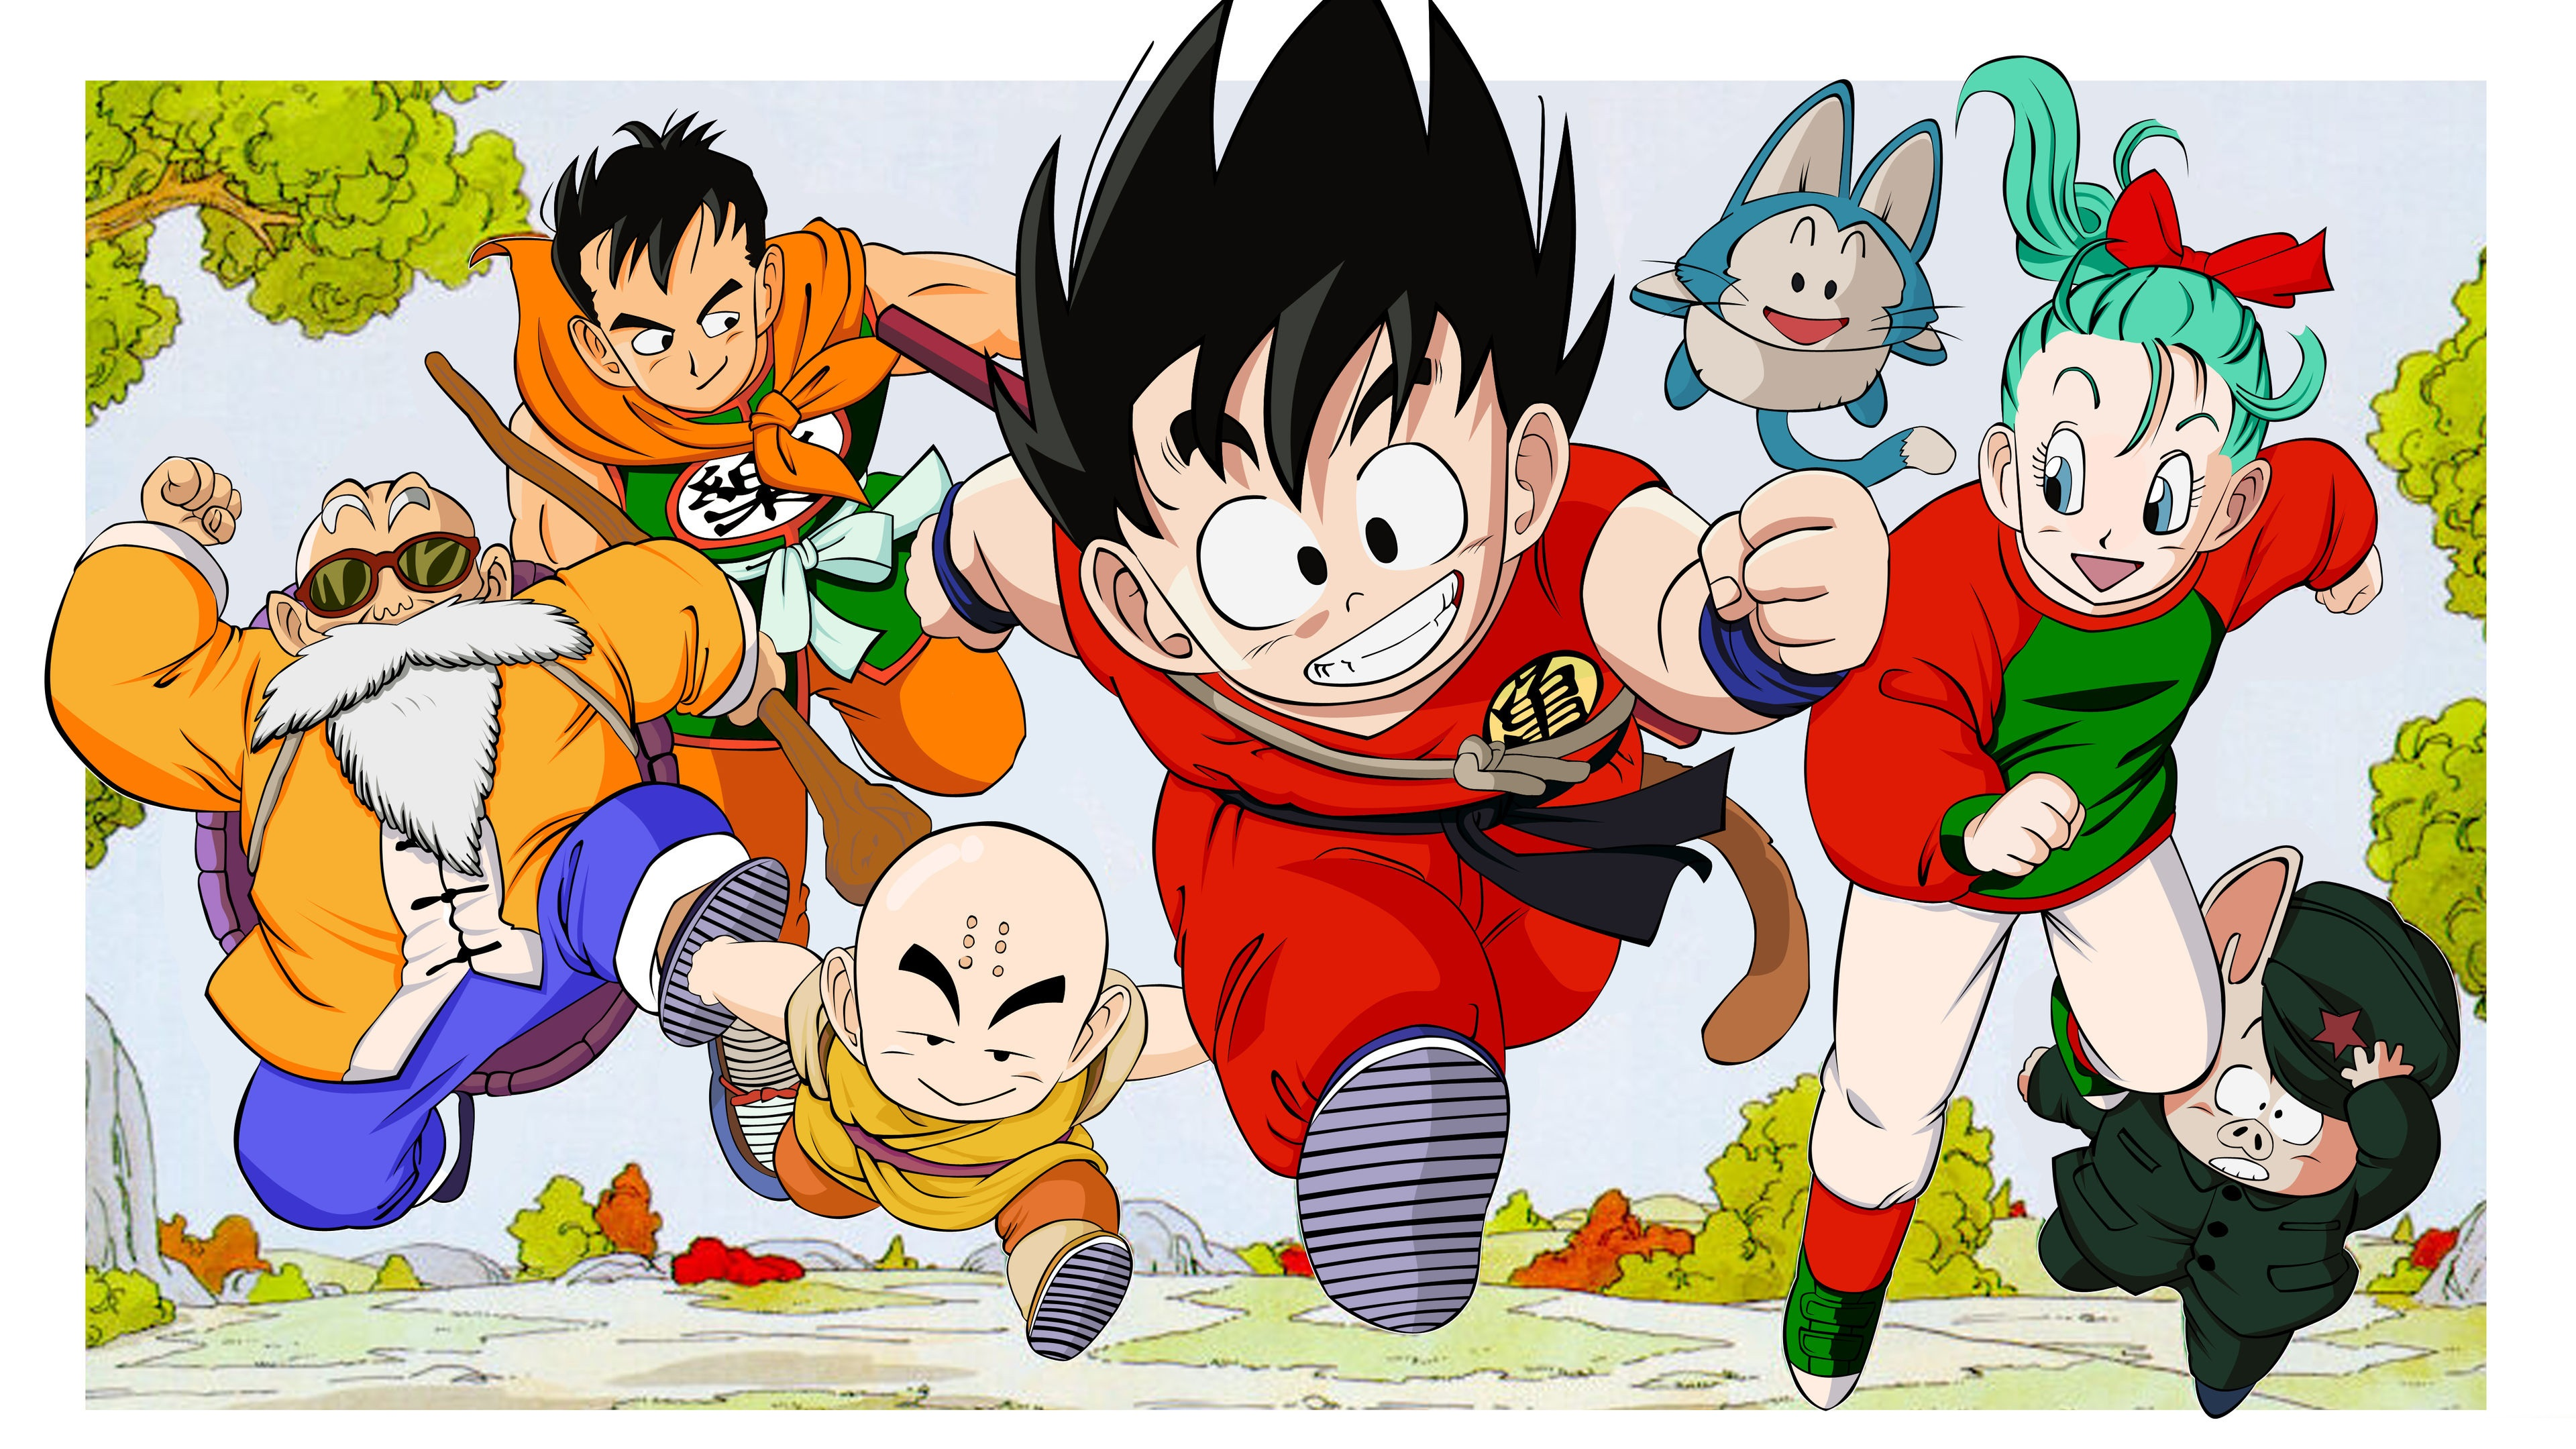 Download Wallpaper 3840x2160 Dragon Ball Classic Anime